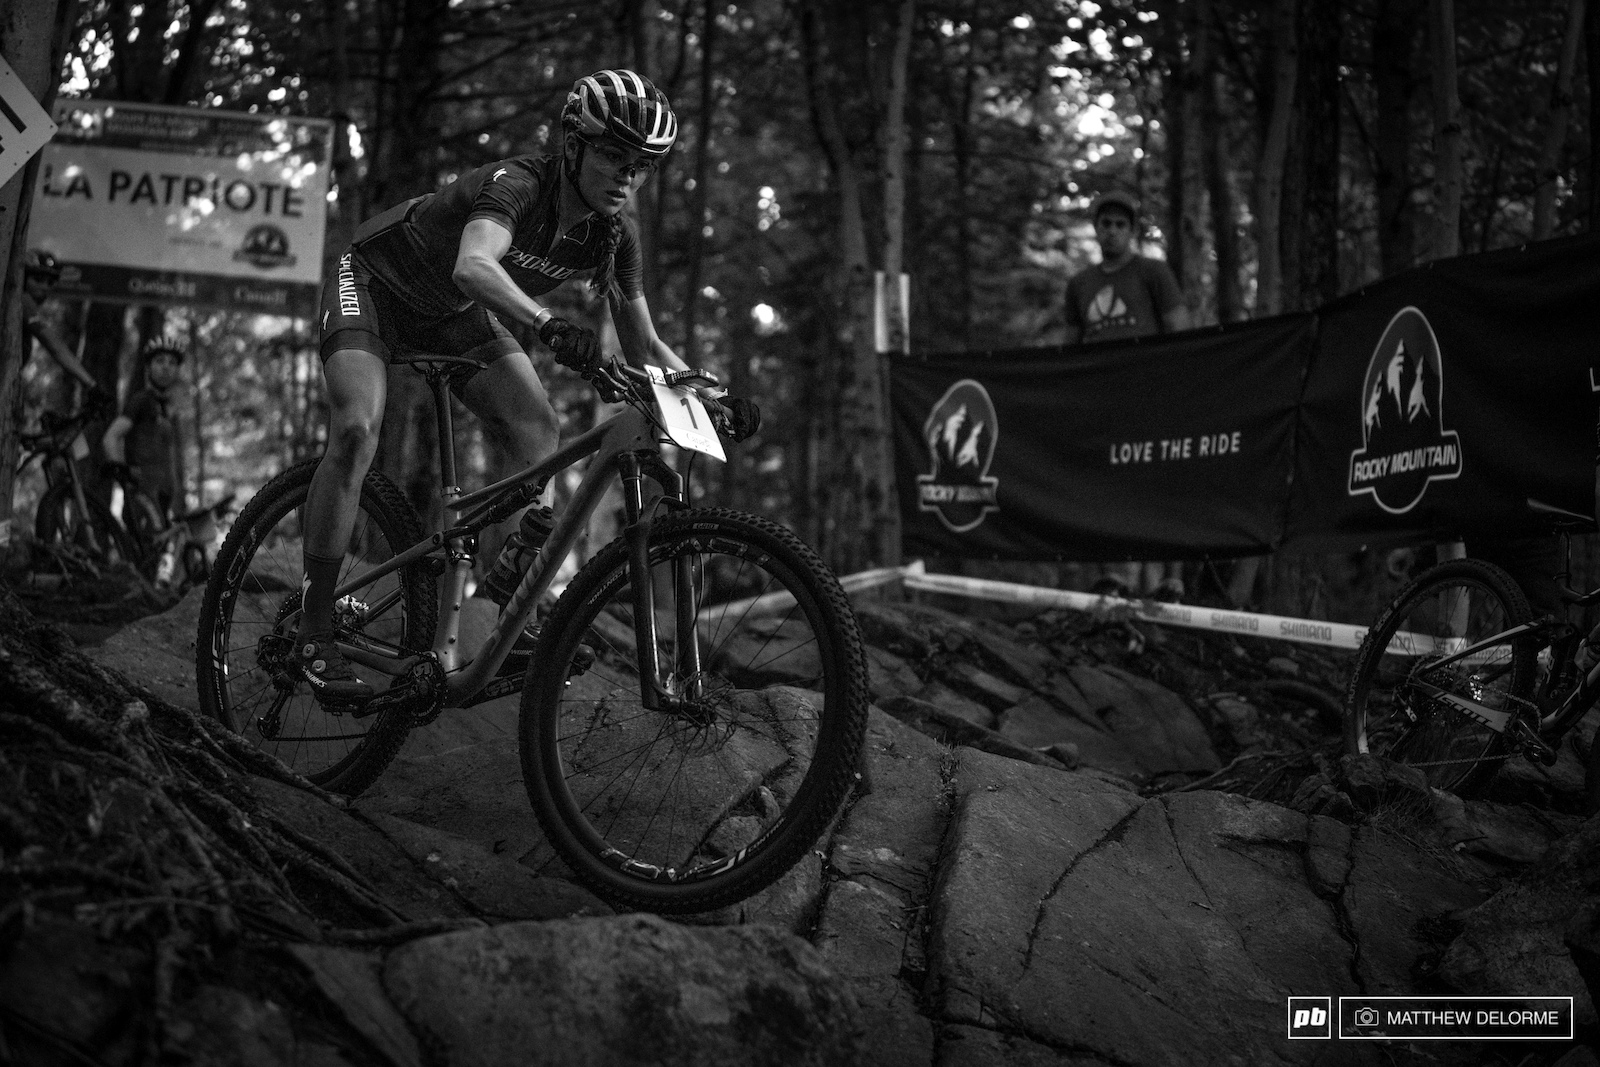 Kate Courtney testing the waters after the rain through La Patriote.